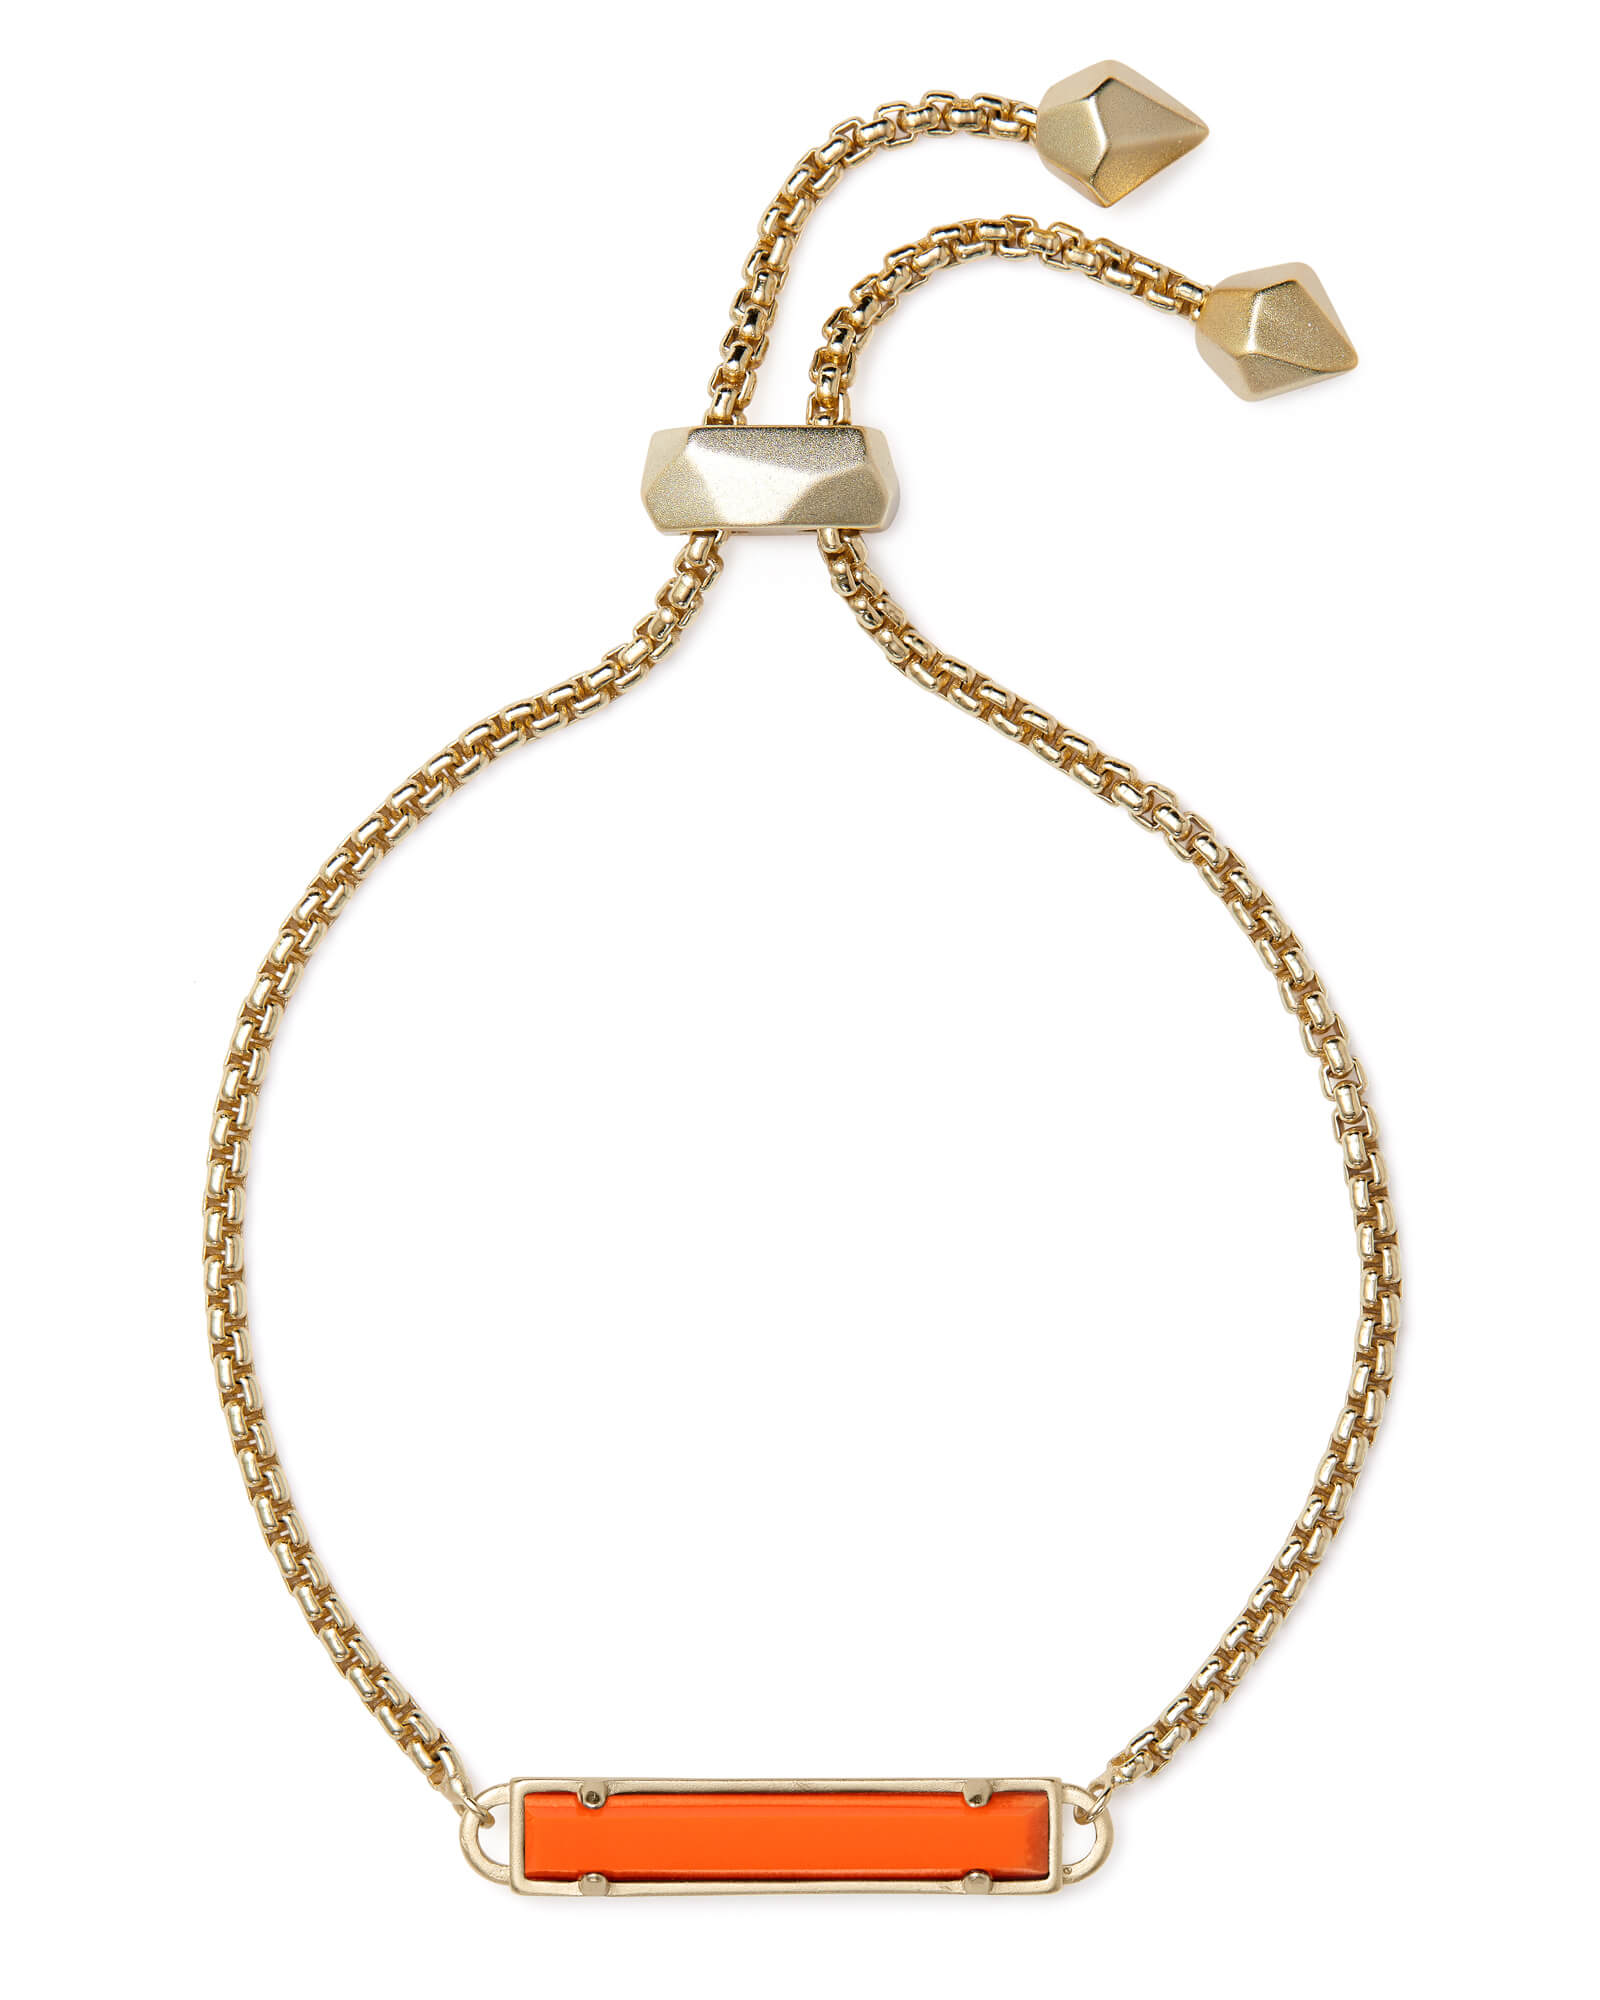 Stan Gold Chain Bracelet In Orange